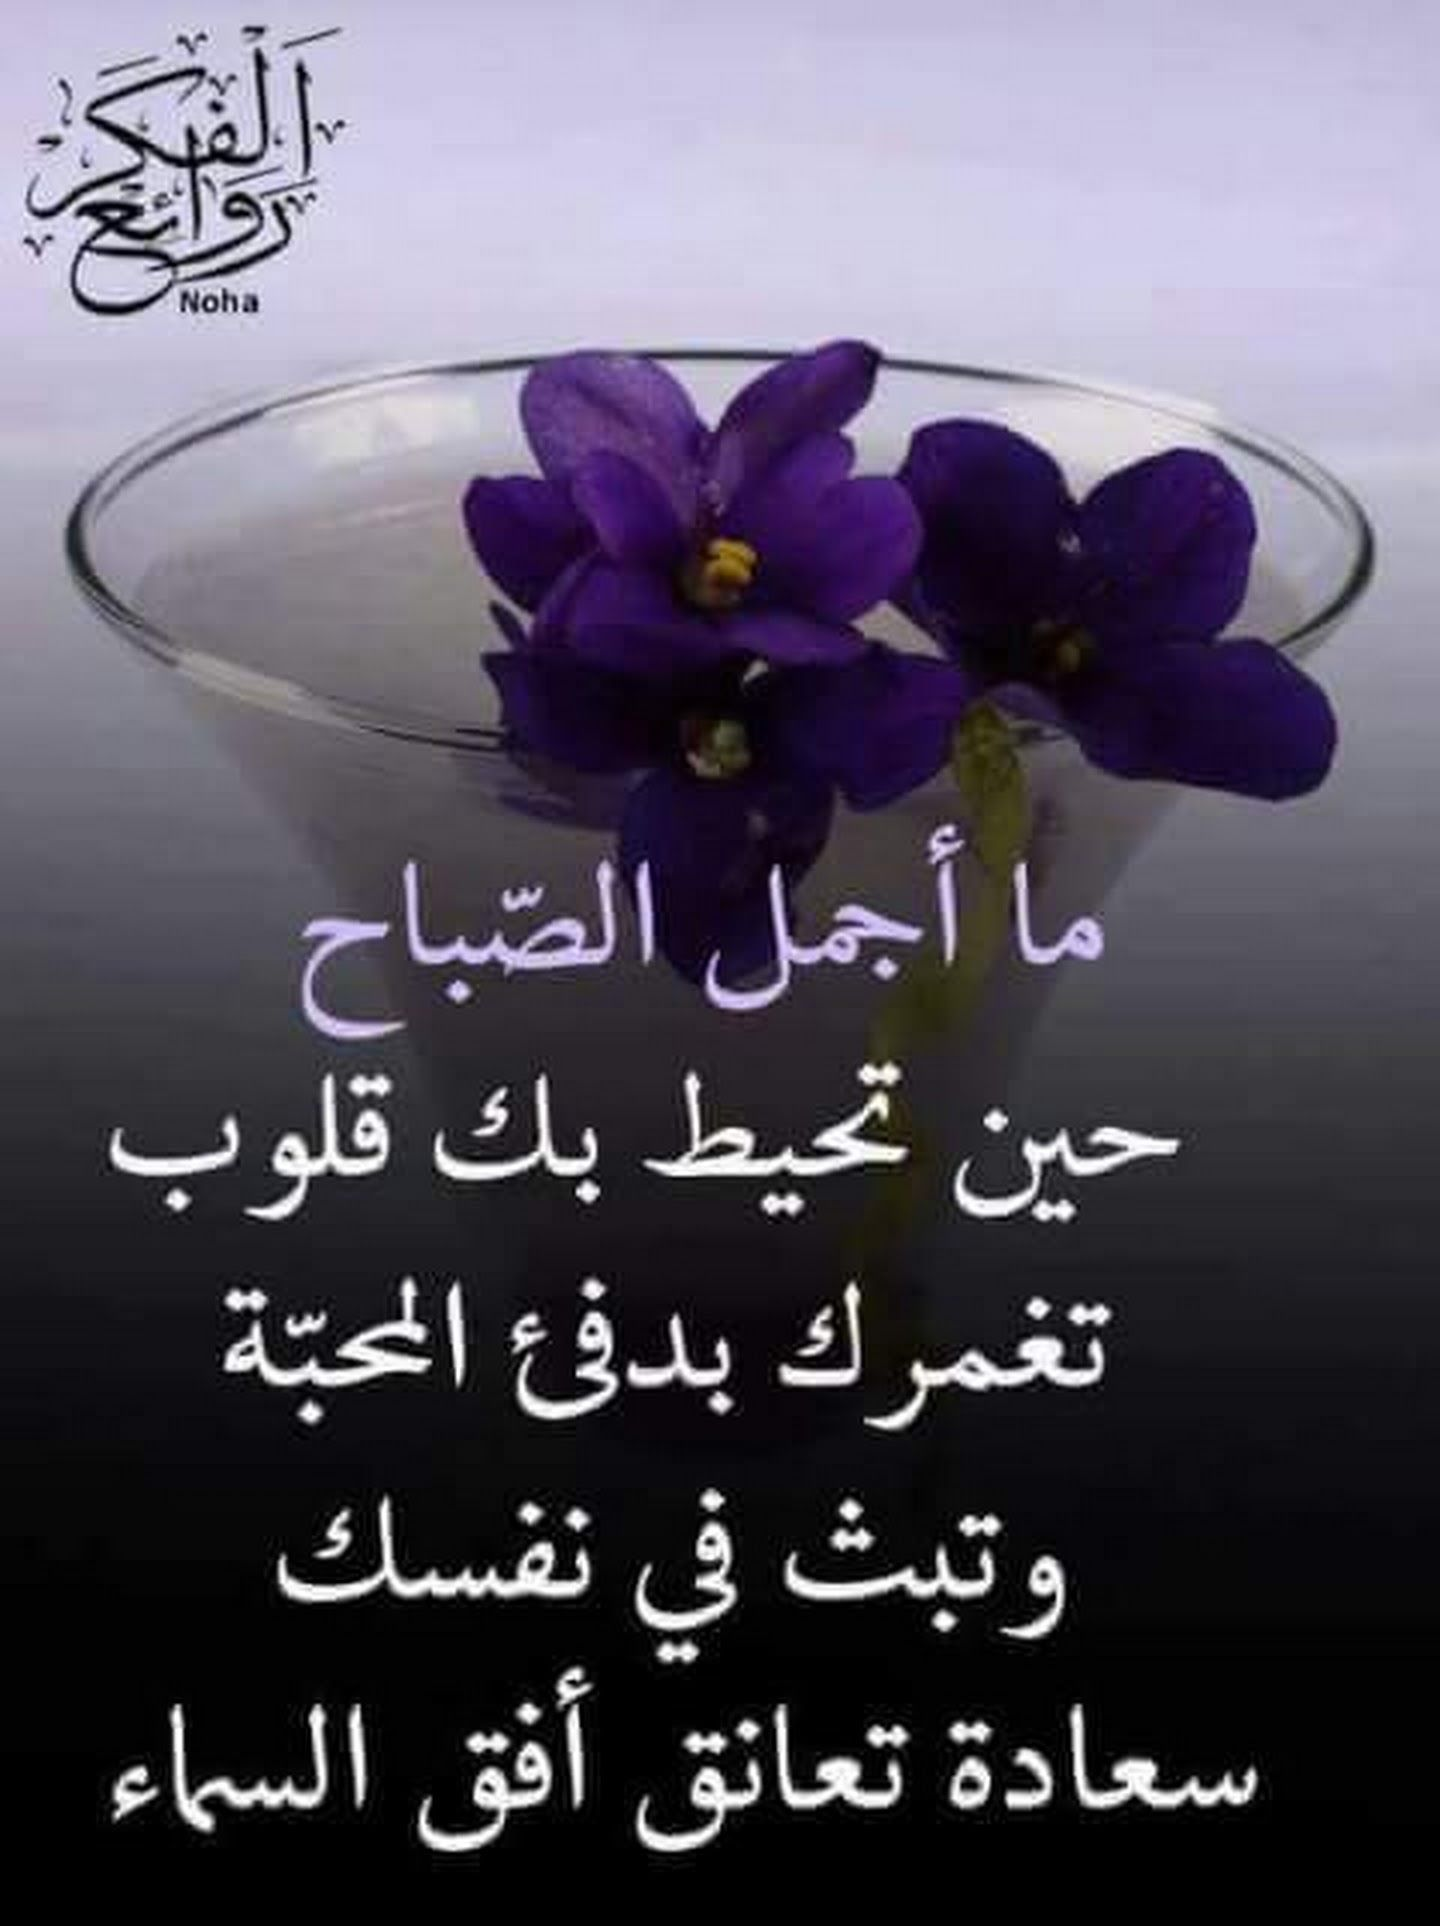 صباح سعادة Good Morning Arabic Good Morning Gorgeous Morning Images